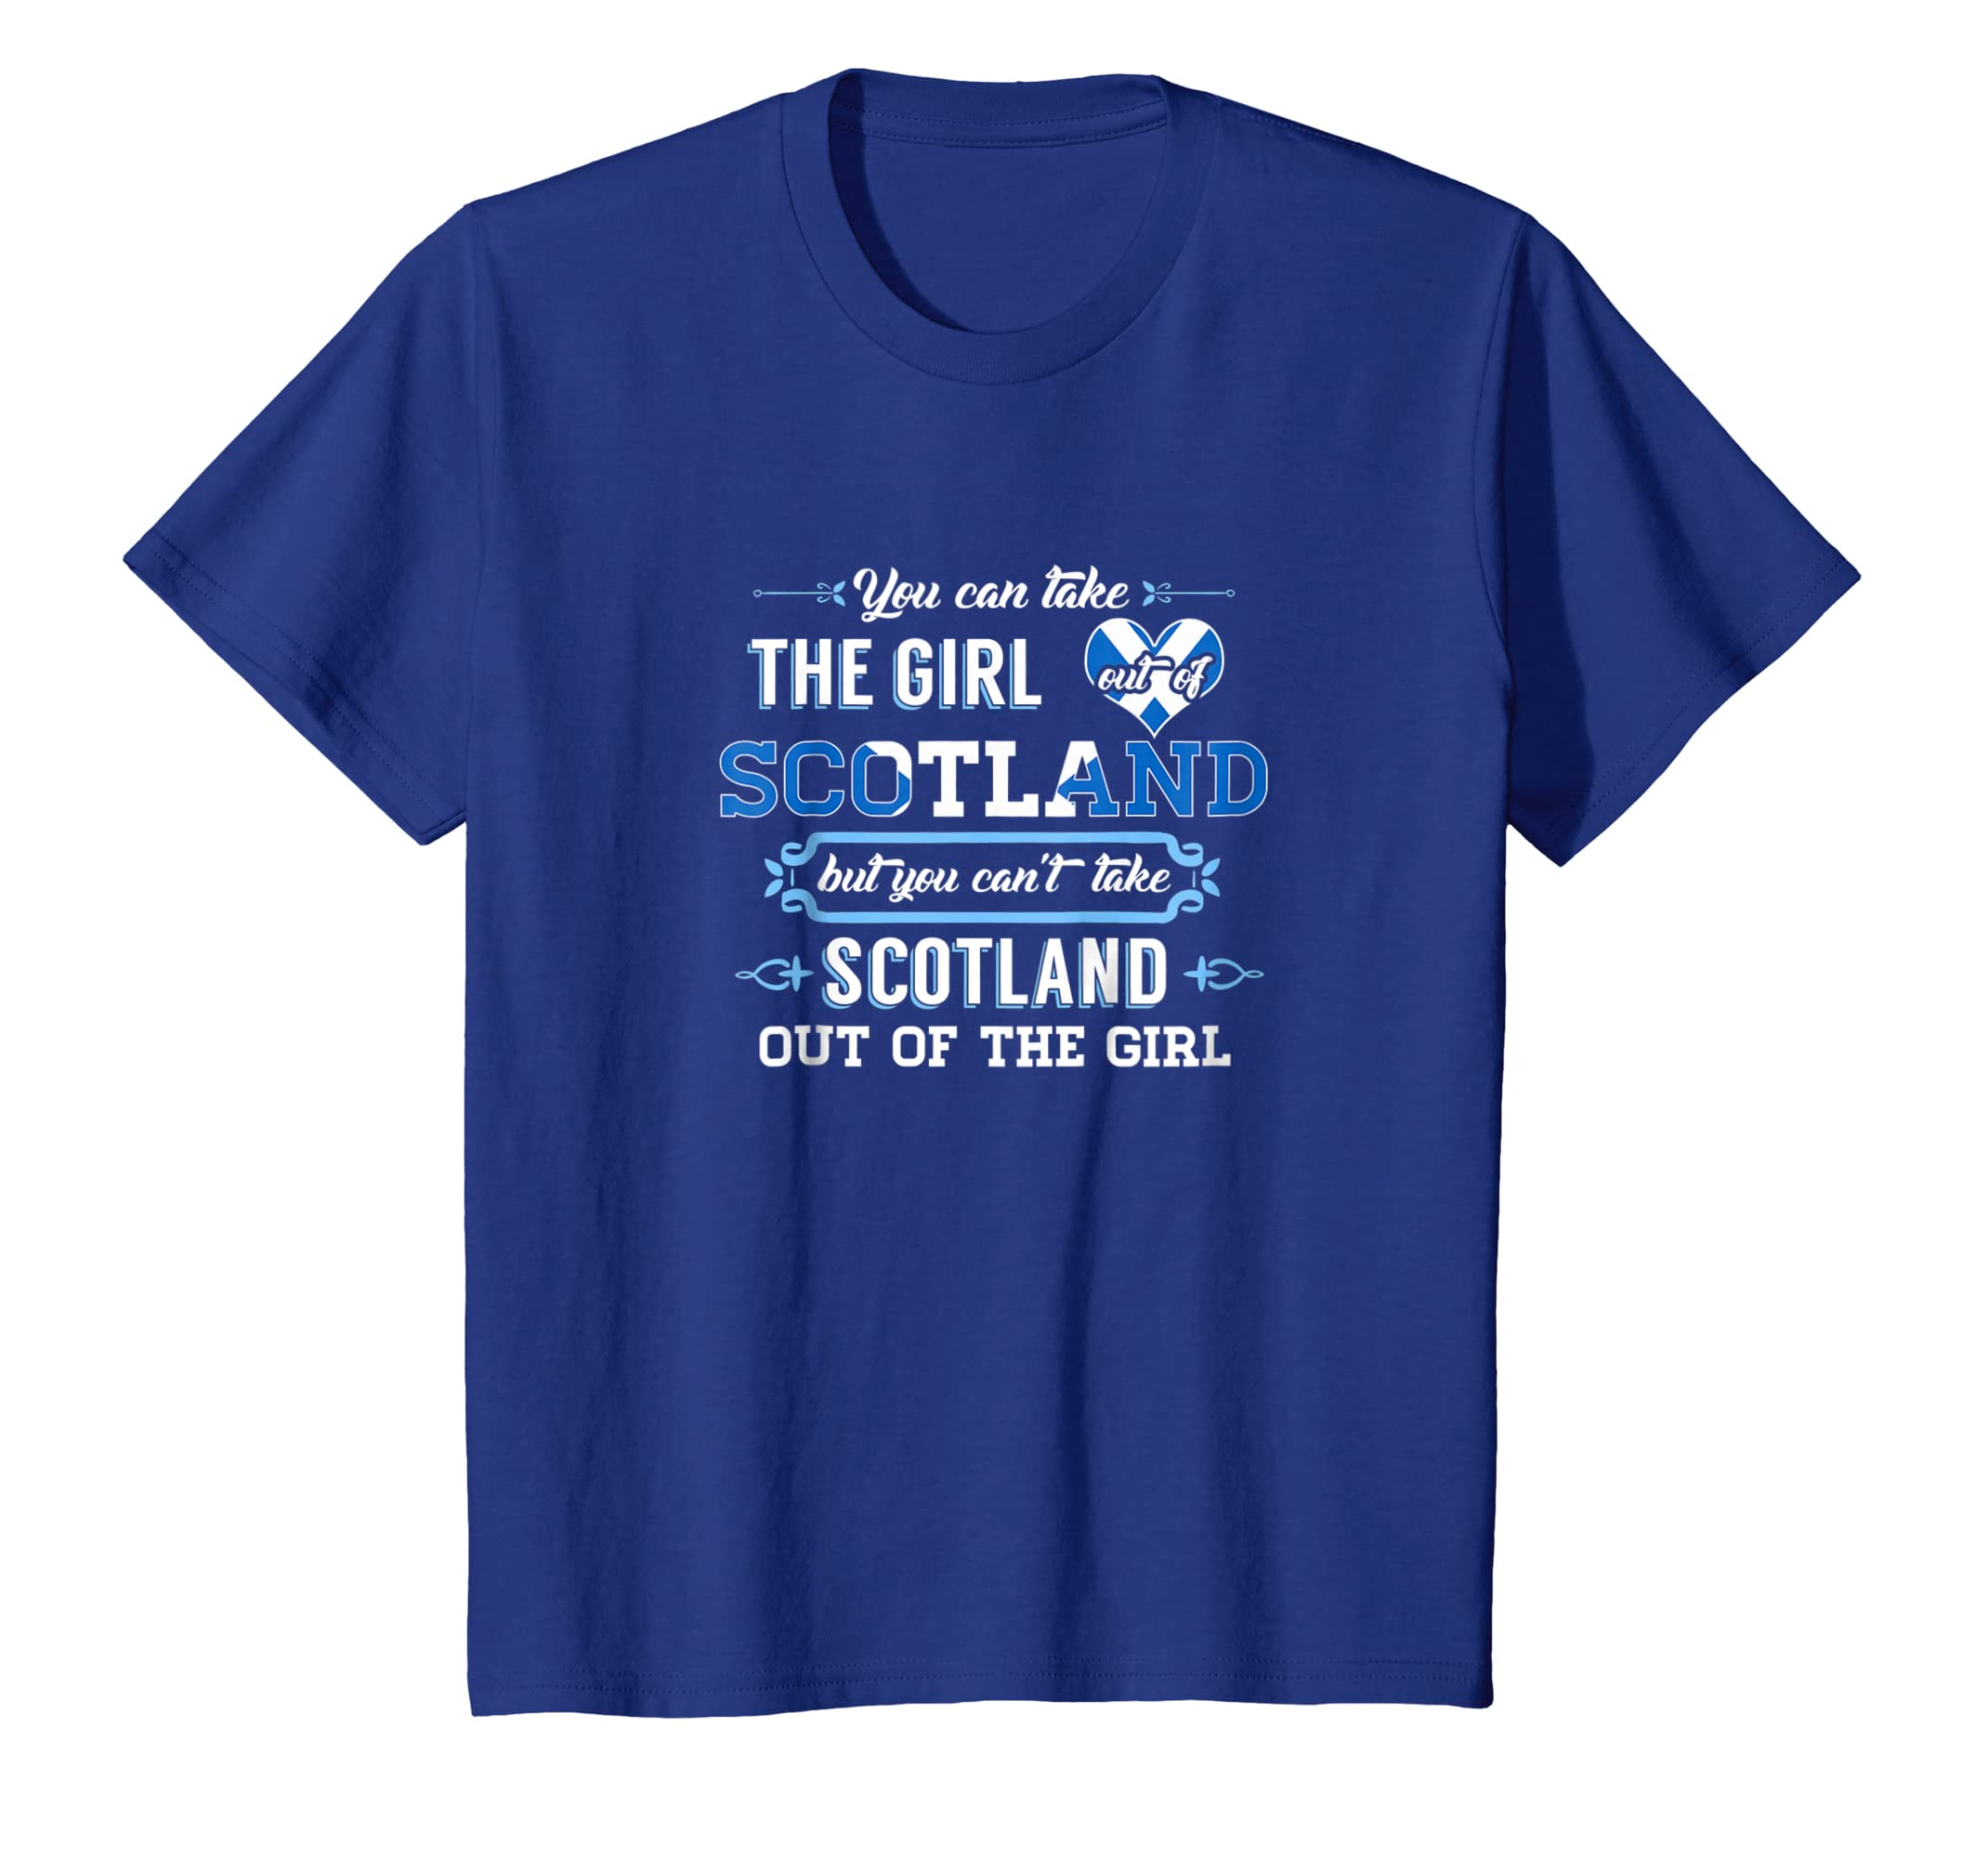 2f6778006 Amazon.com: Scottish Funny T-shirt Ancestry Can't take Scotland Out Girl:  Clothing